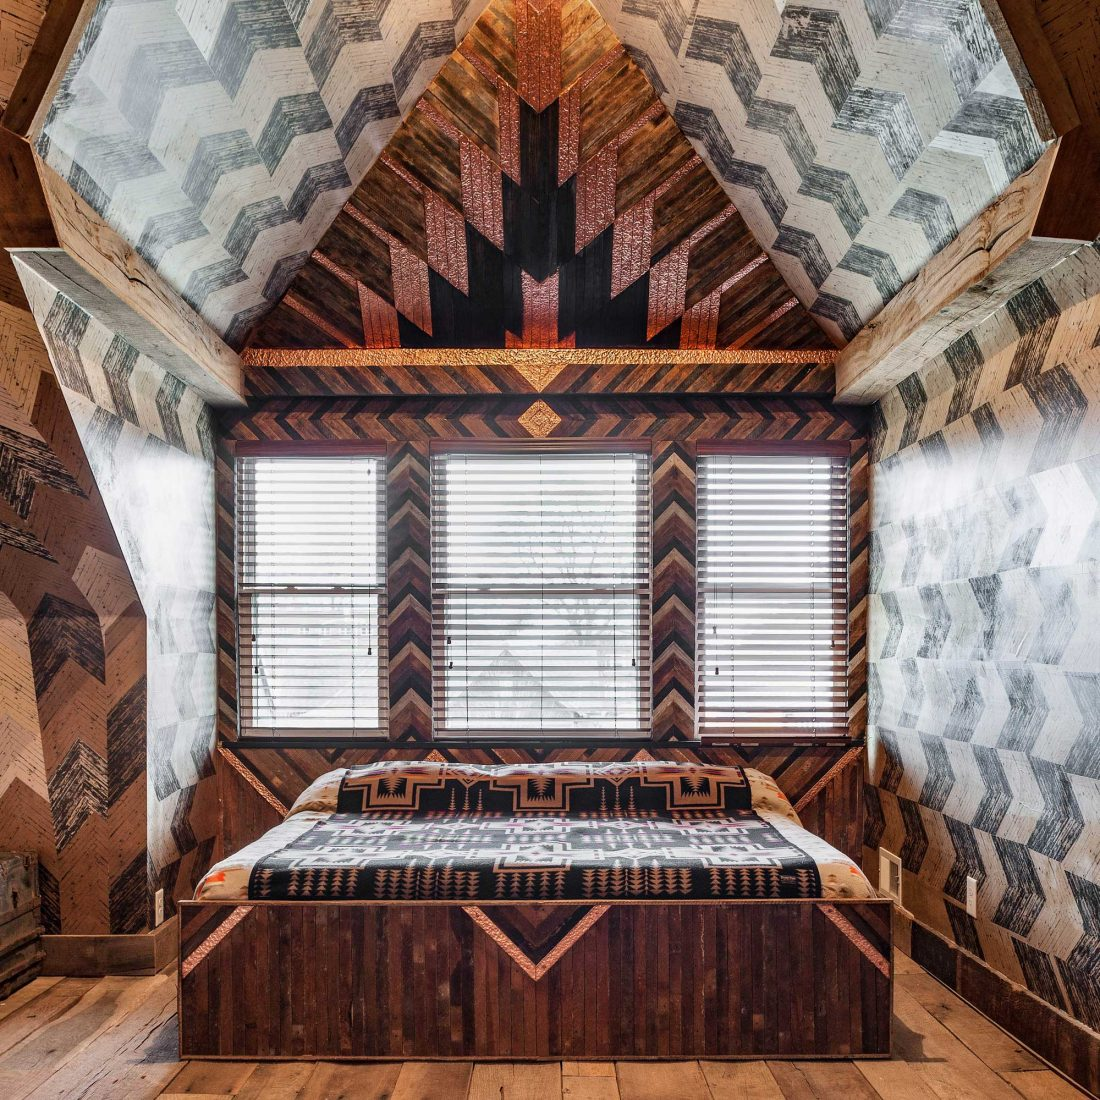 Queen sized bed inside The Lions Den room of Urban Cowboy Nashville. The bed is placed in a cozy area of this Penthouse room, with a 14 foot wooden headboard. Photo taken by Ben Fitchett.